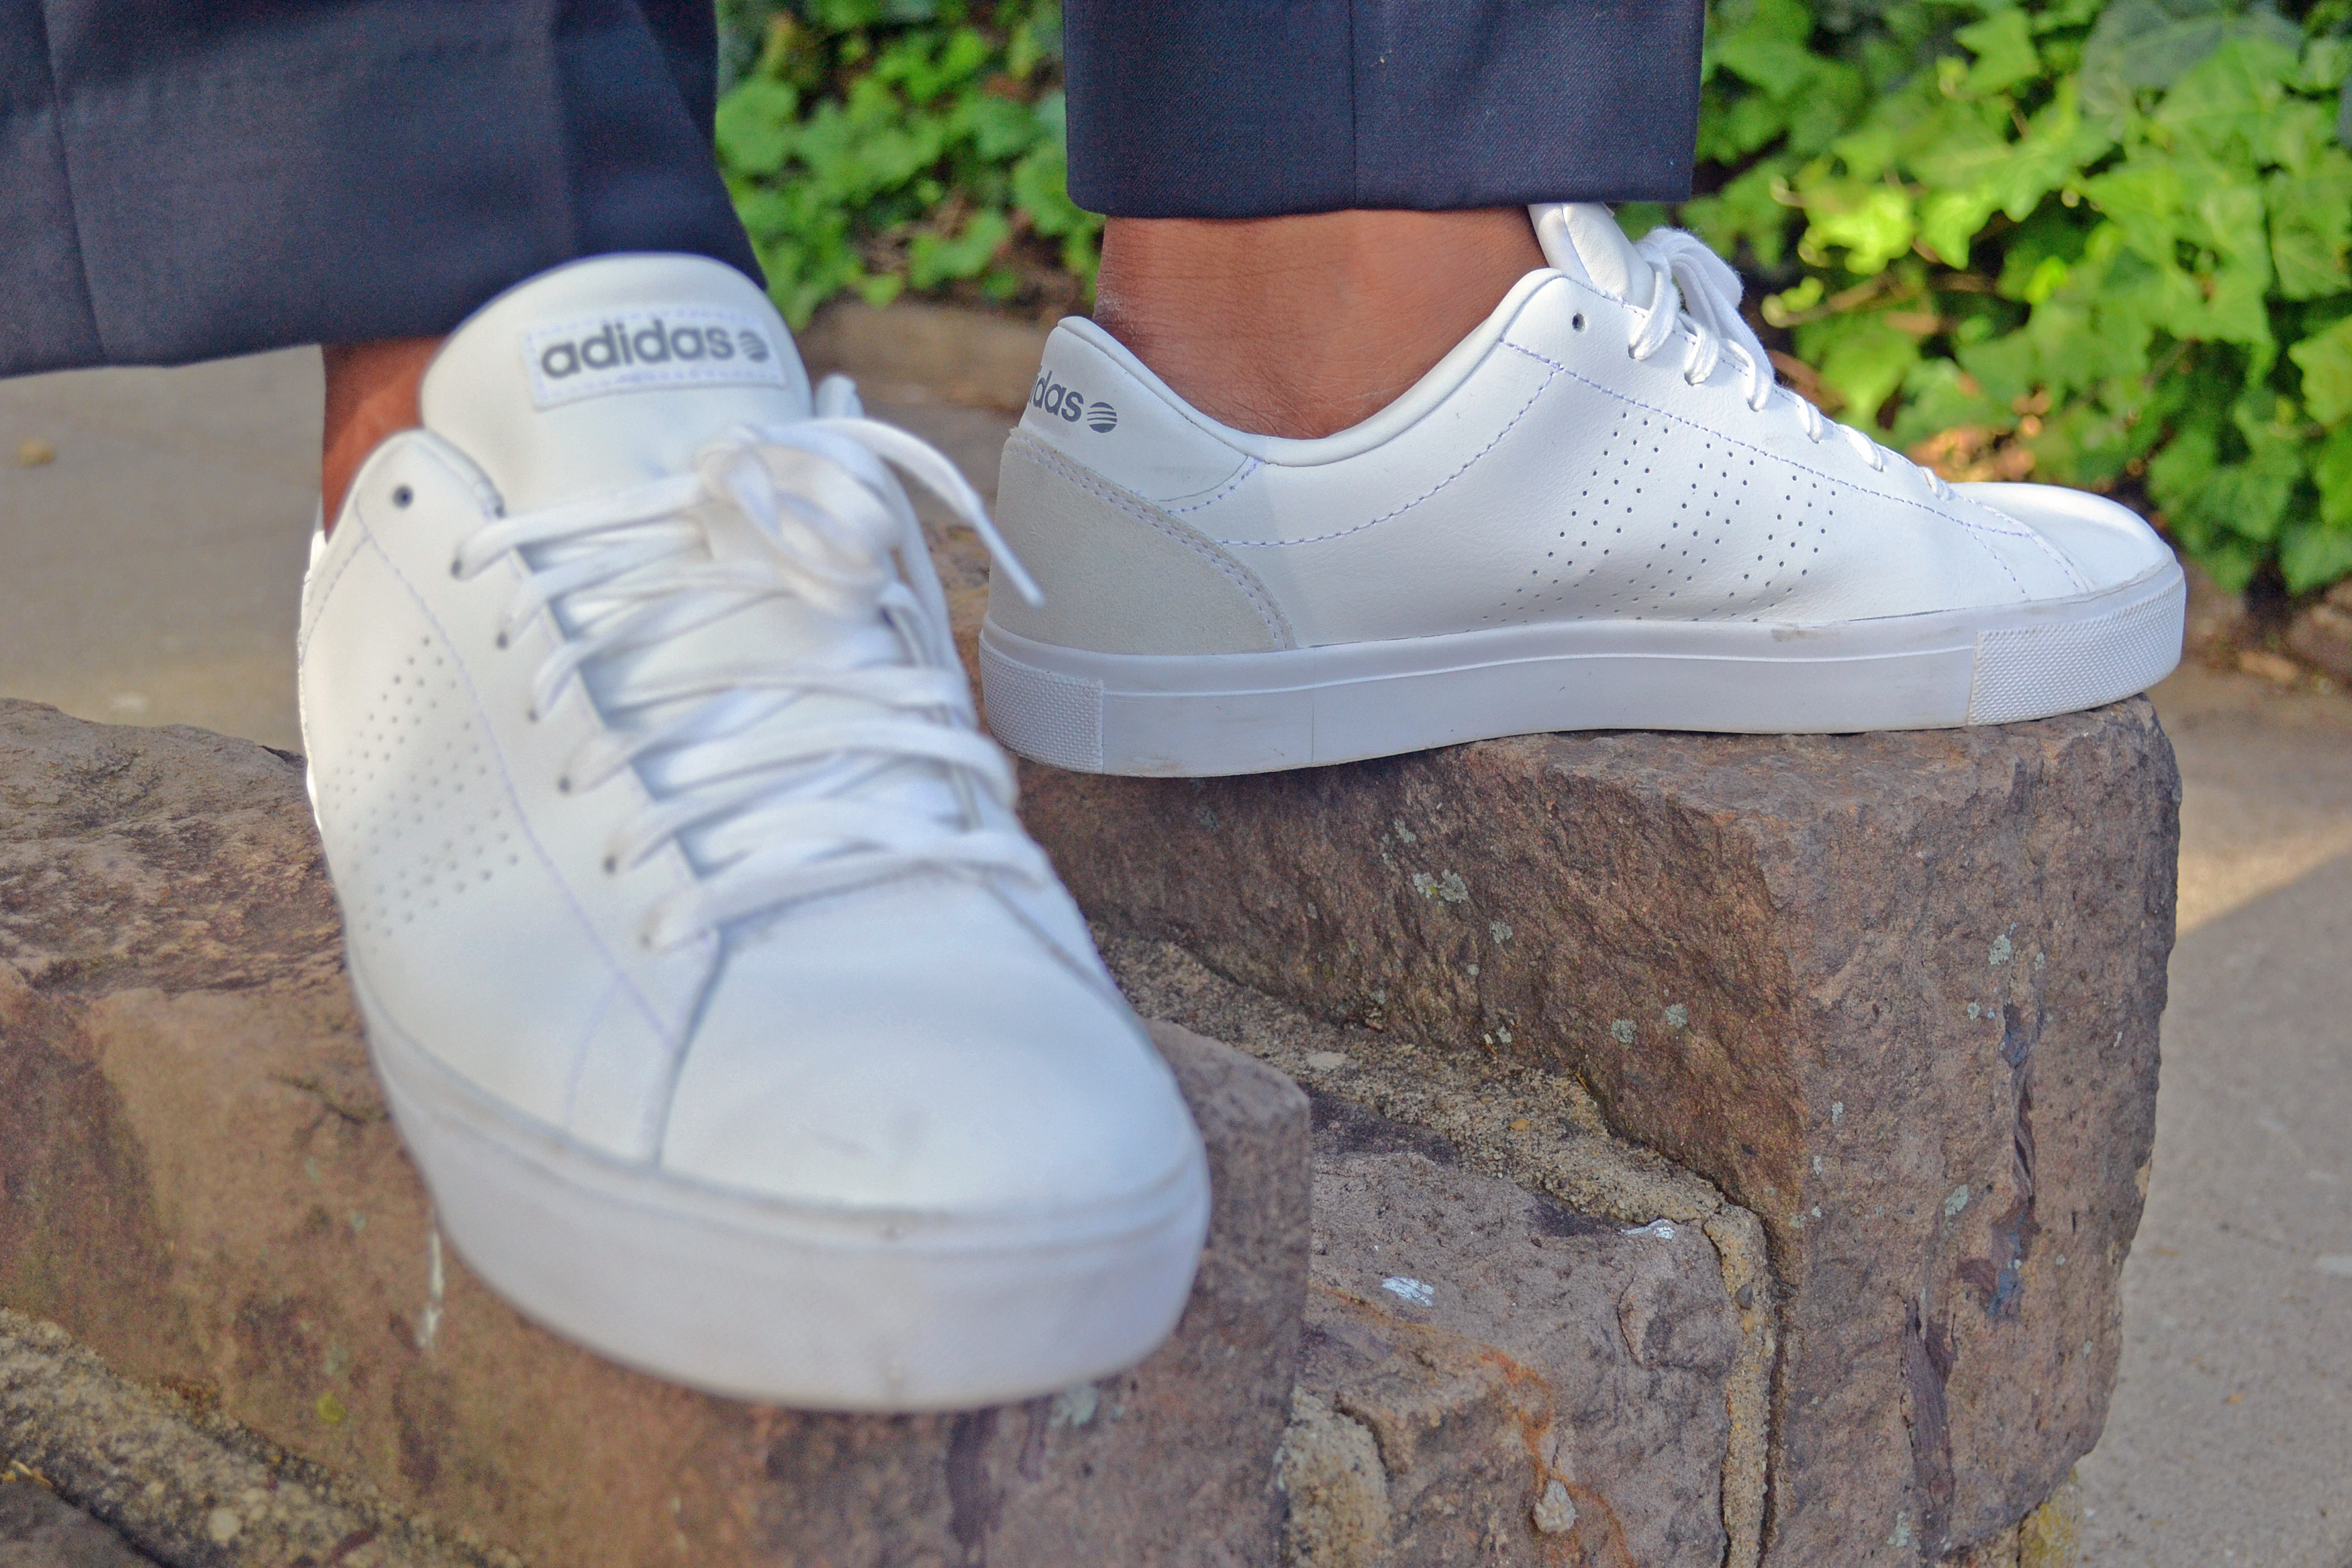 Men's Style Pro In Adidas White Neo Daily Clean Low Tops